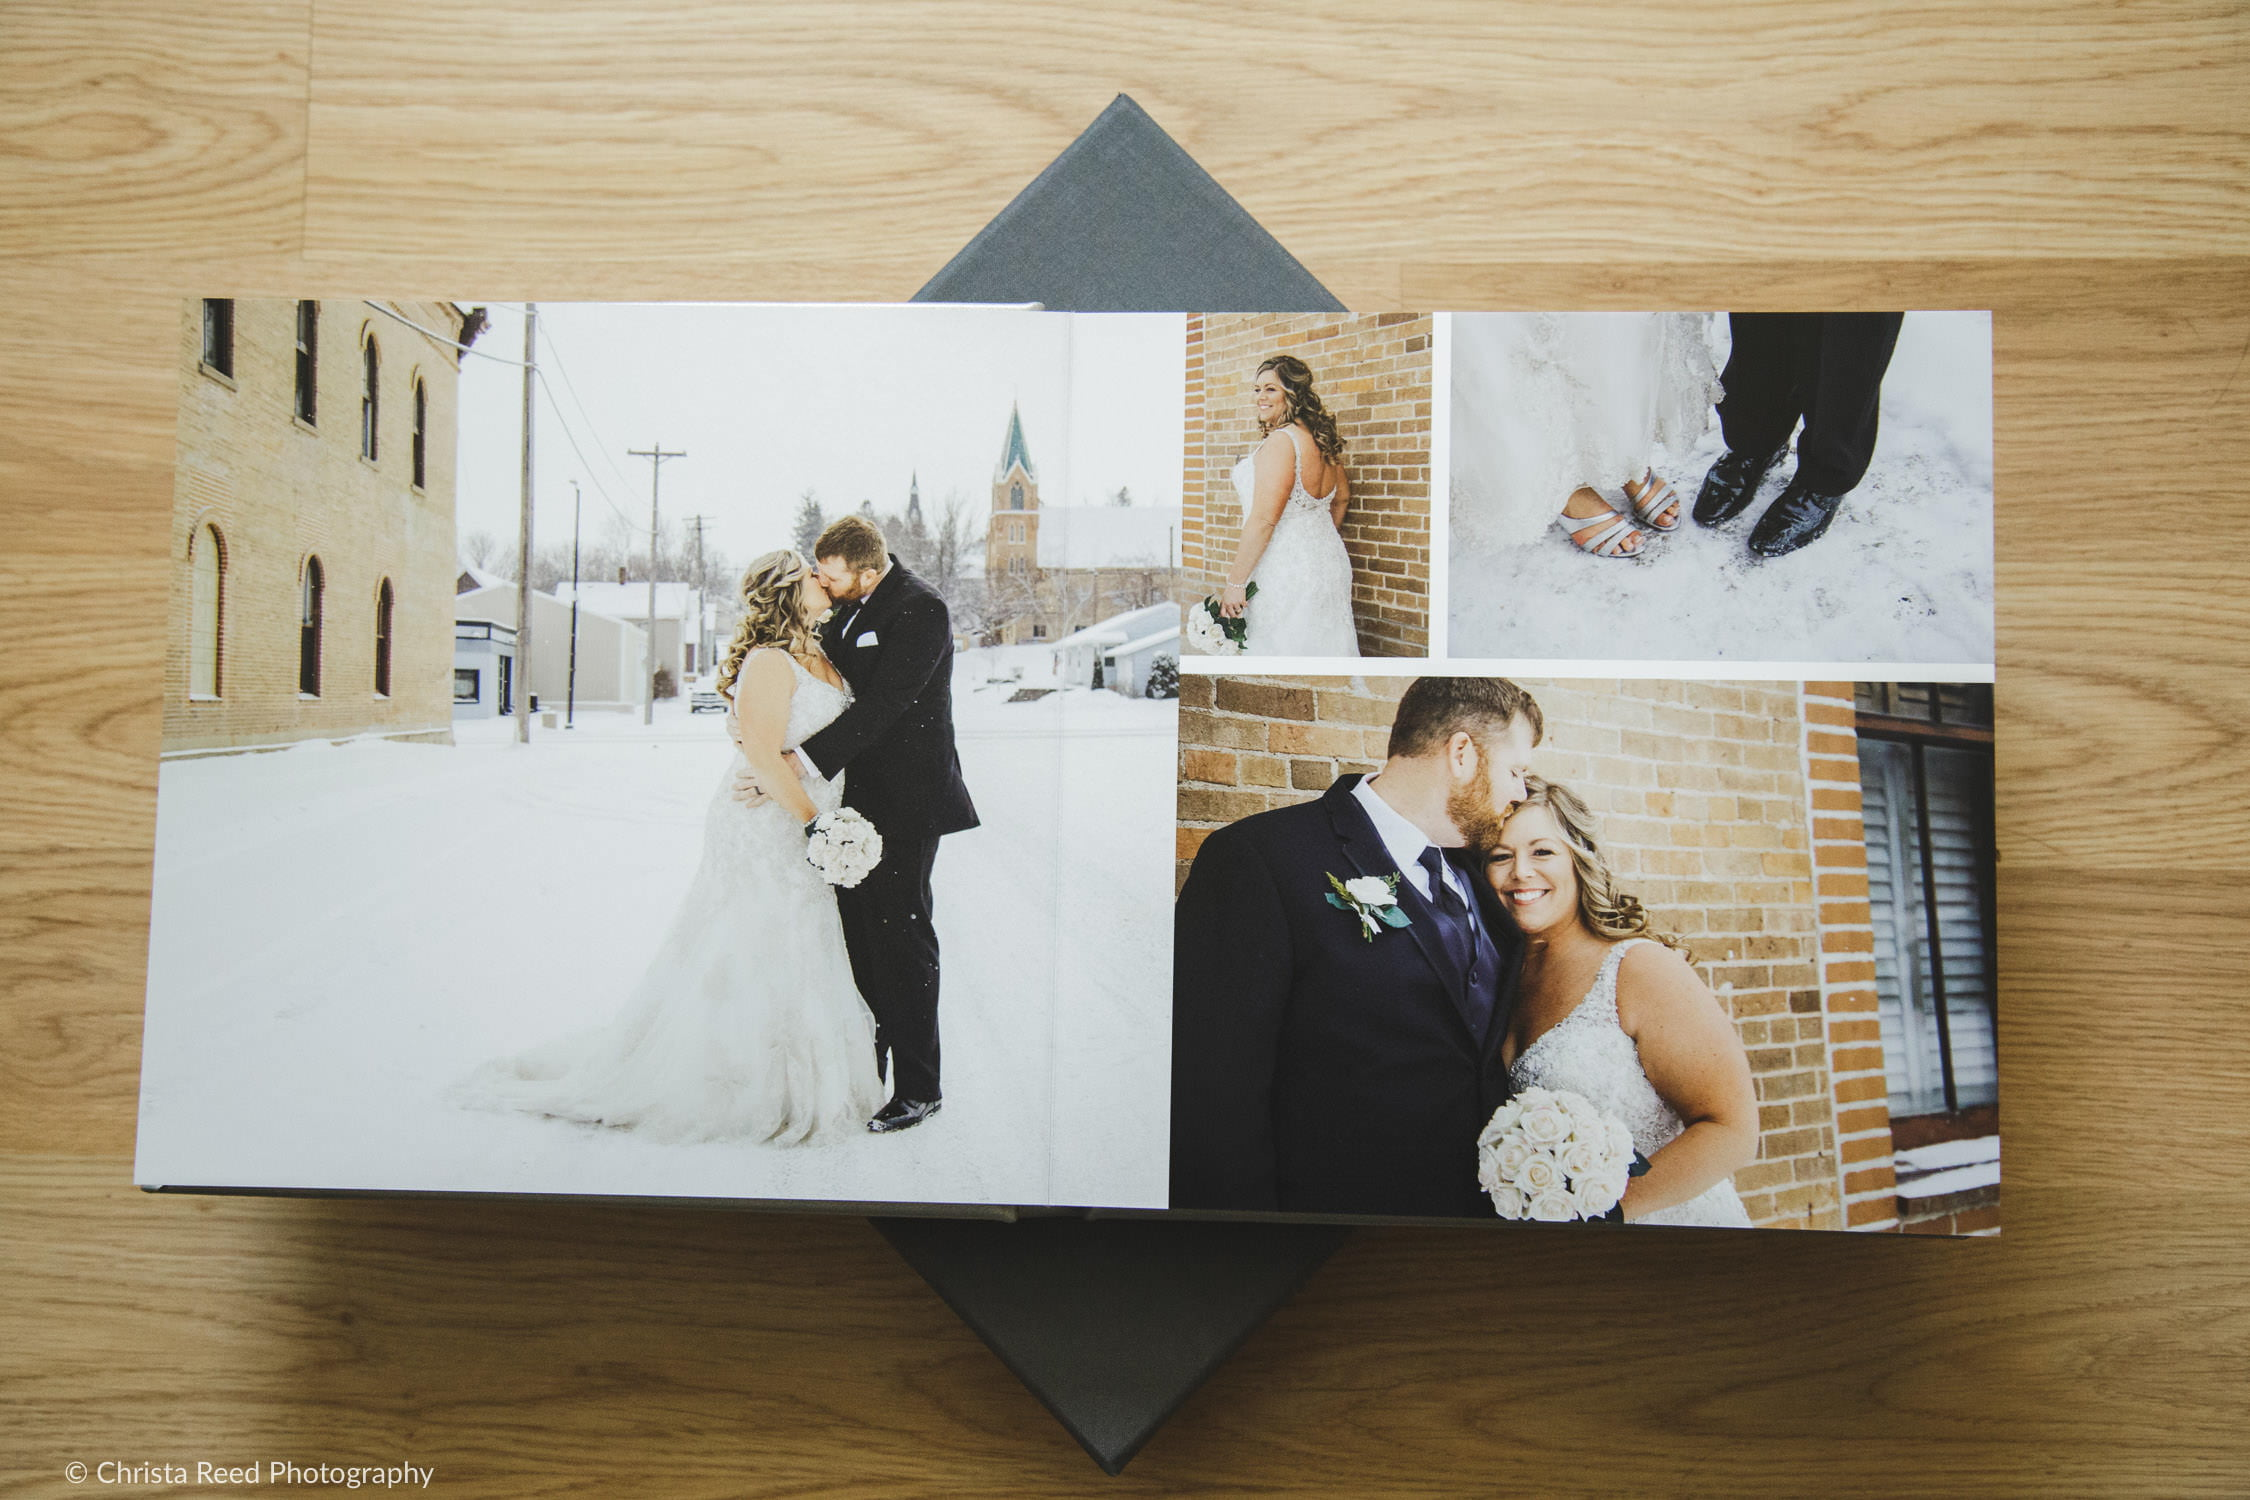 leather wedding album from a professional photographer in Minnesota